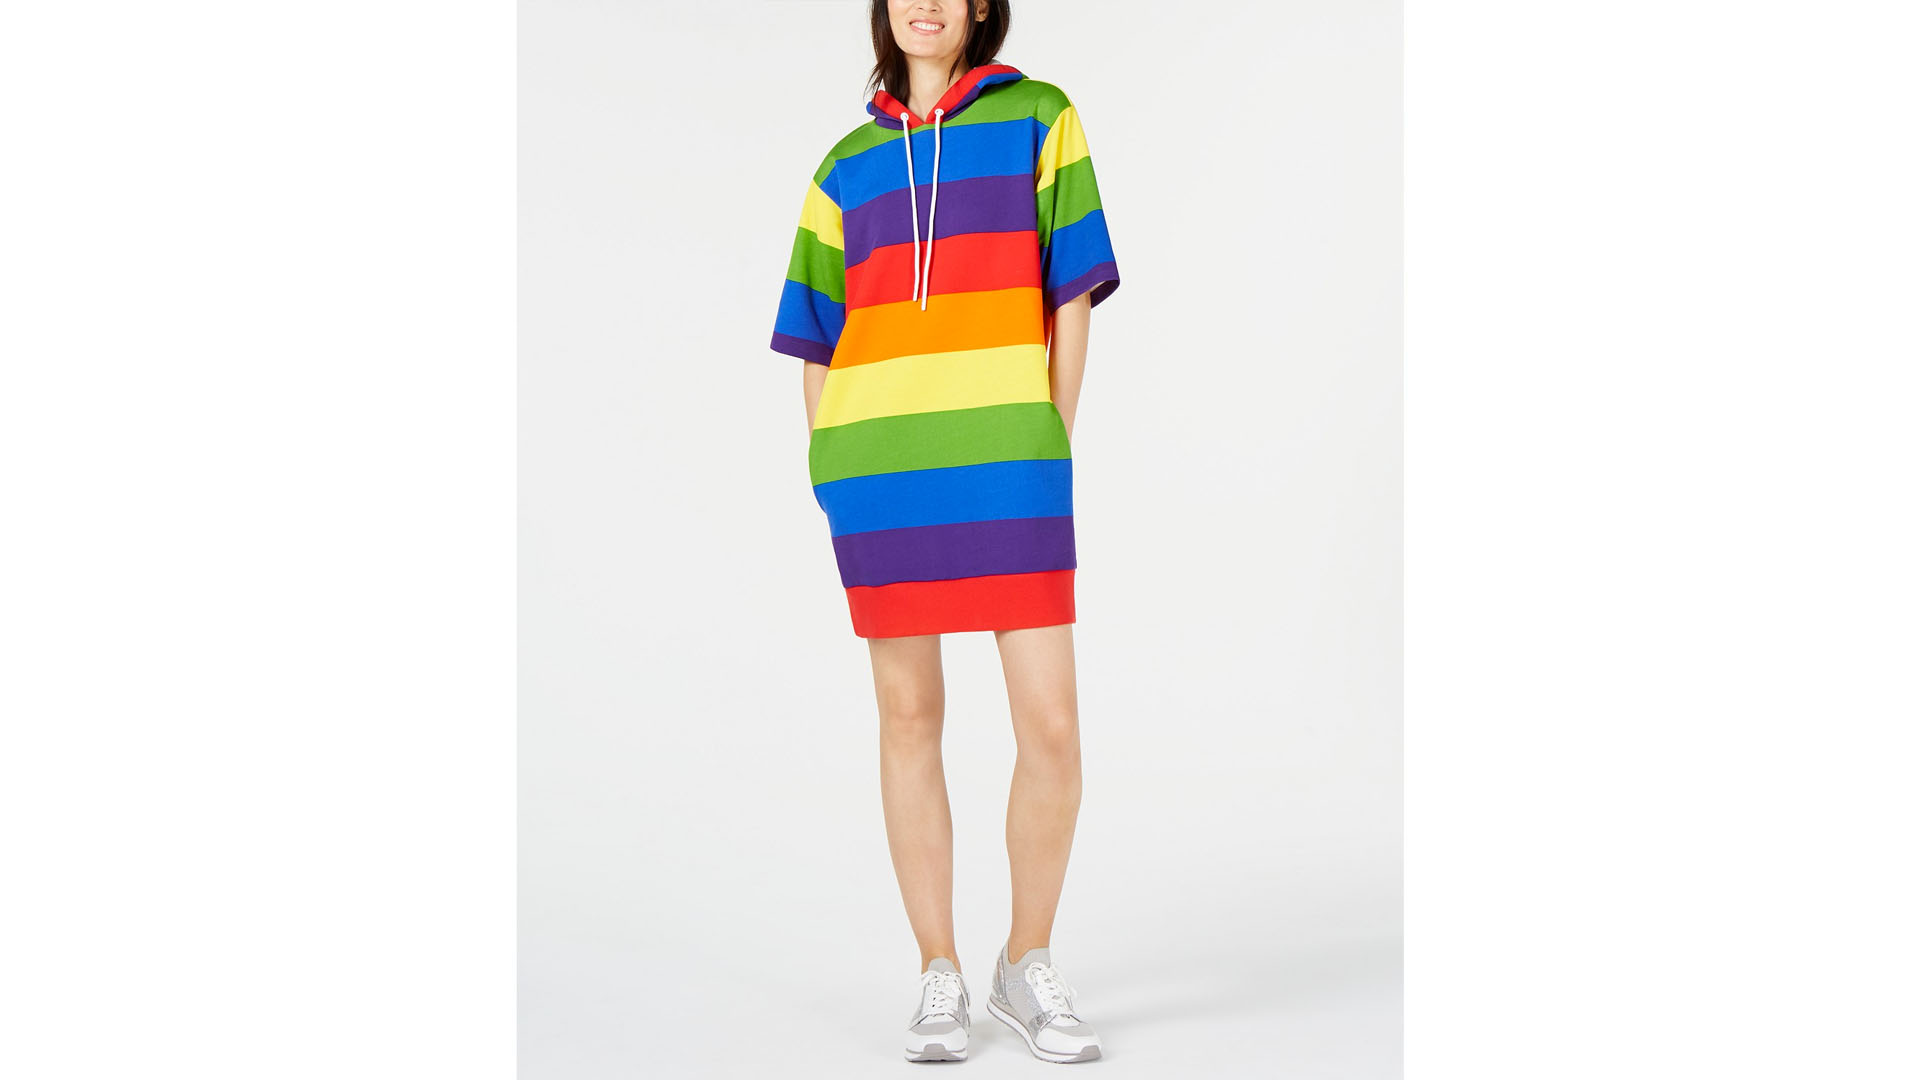 dress-up-with-pride-inc-rainbow-tank-trevor-project